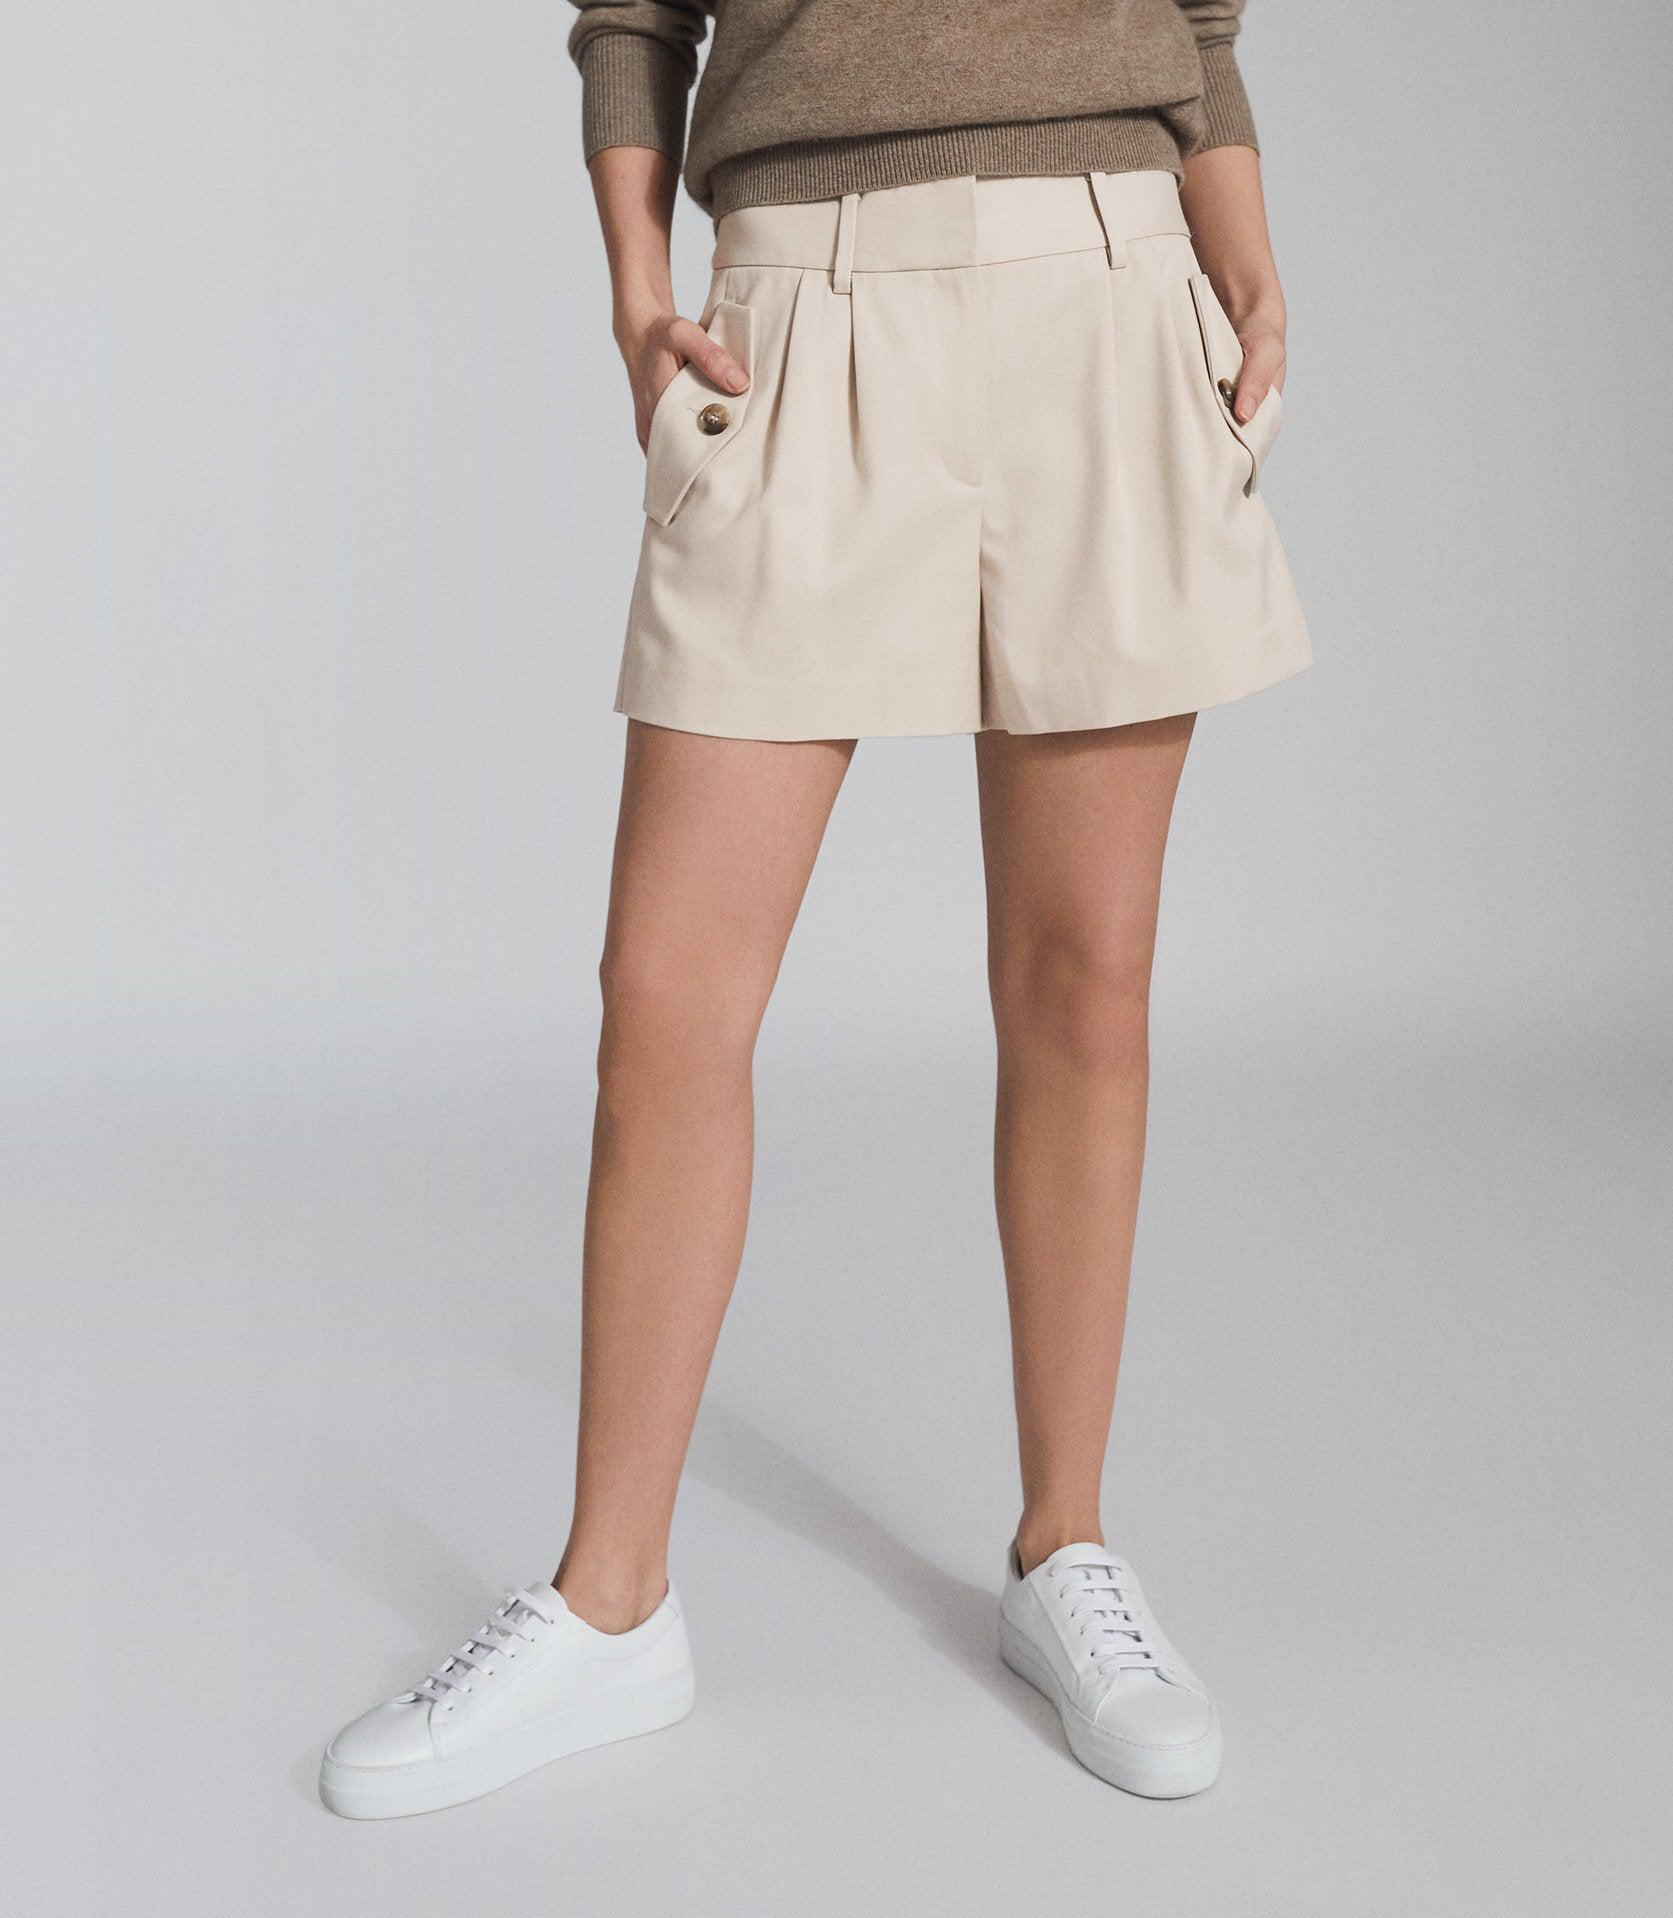 BROOKLYN - POCKET FRONT TAILORED SHORTS 2